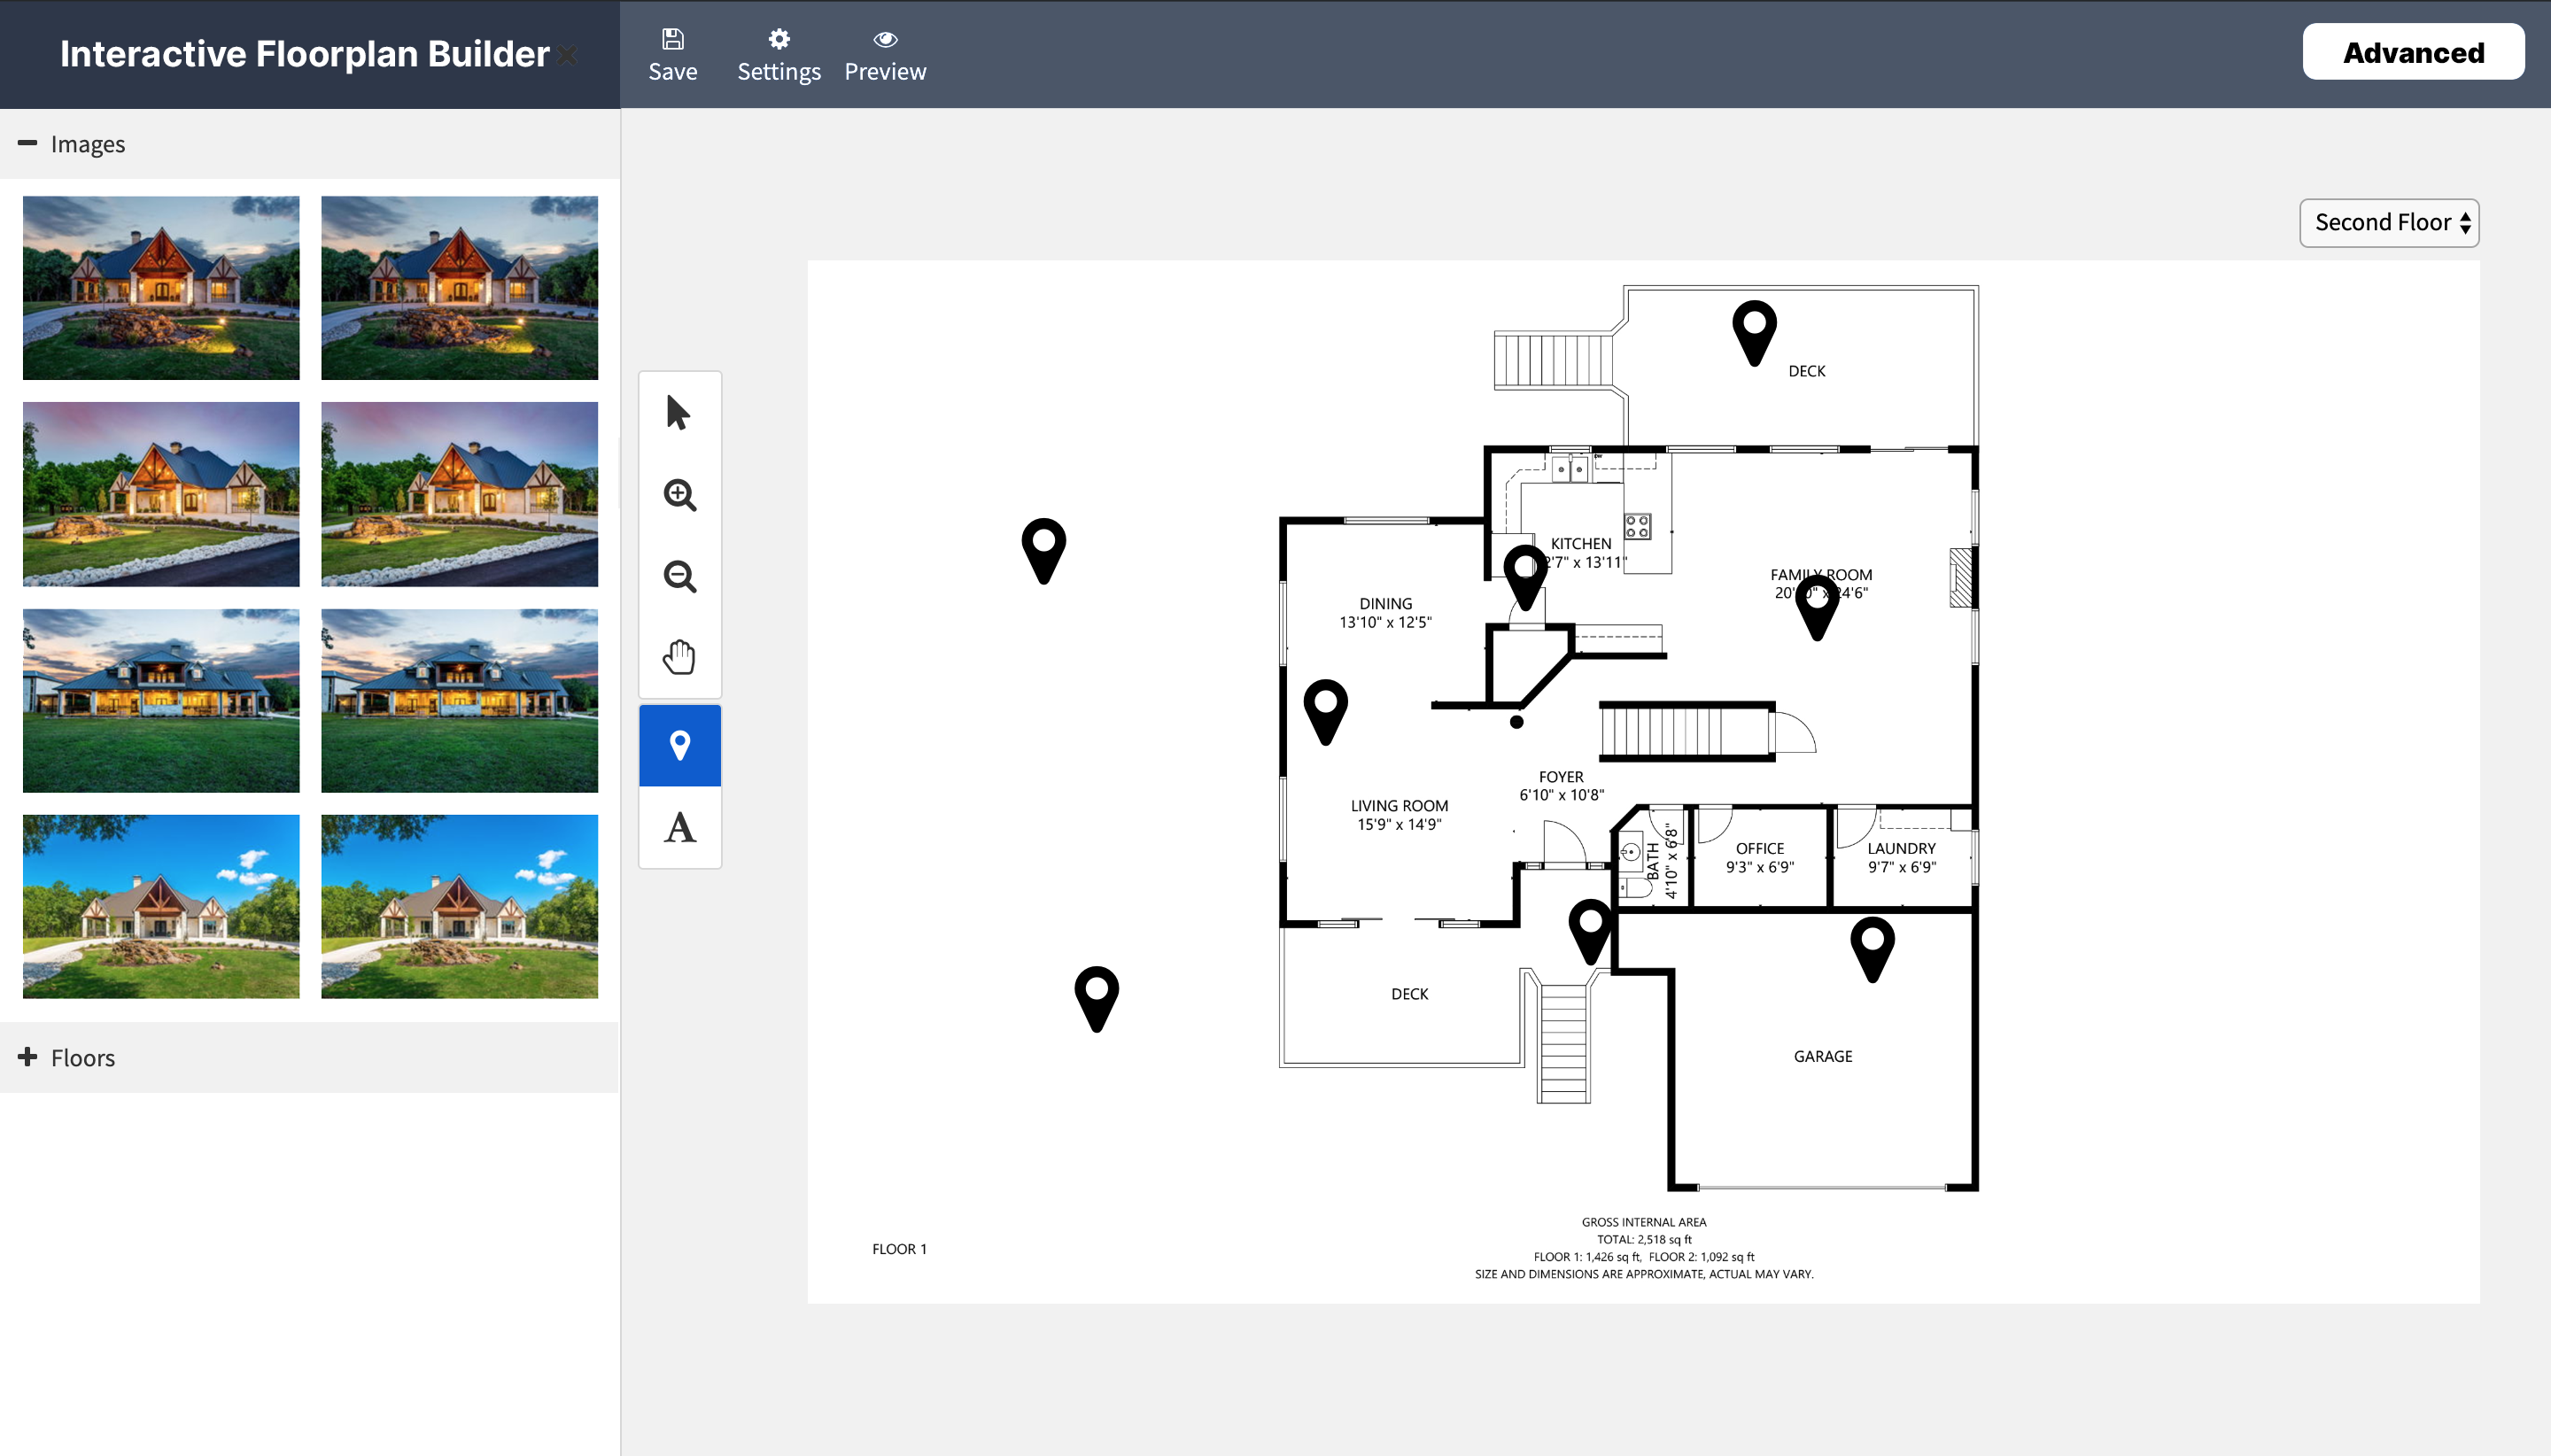 Update #2: Interactive Floorplans